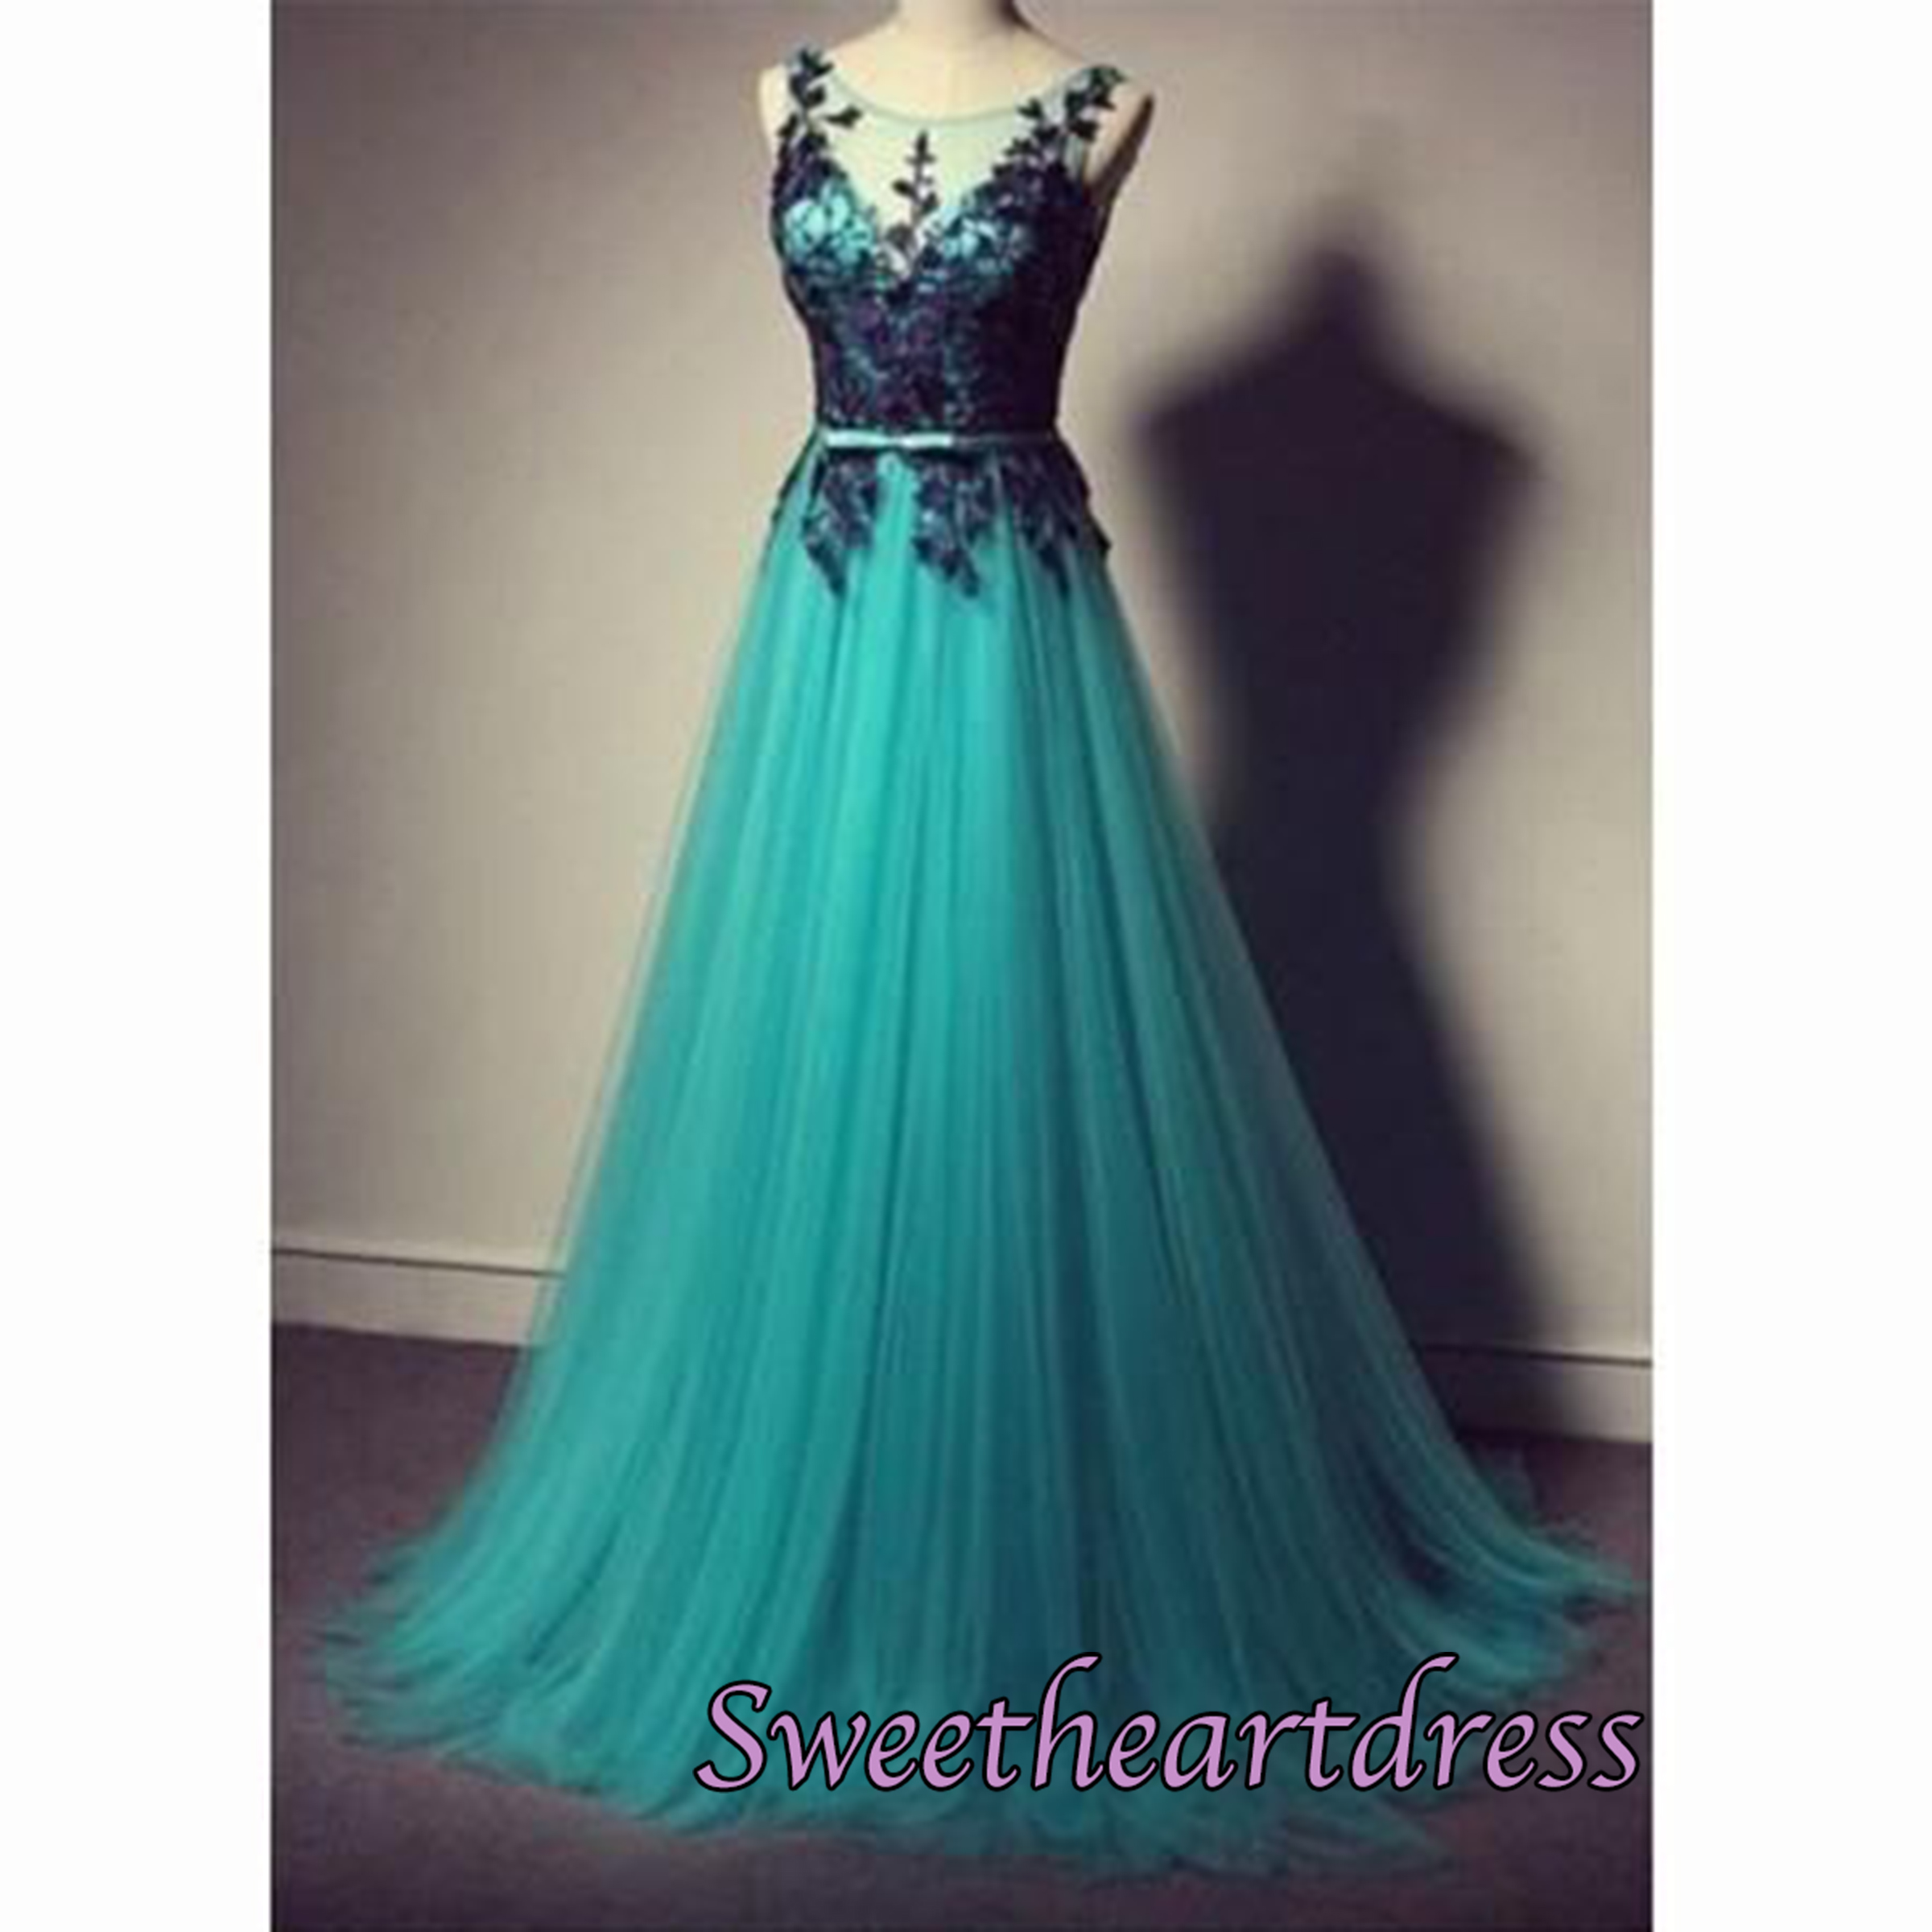 Cheap Prom Dresses by Sweetheart Dress · Green tulle applique A-line ...